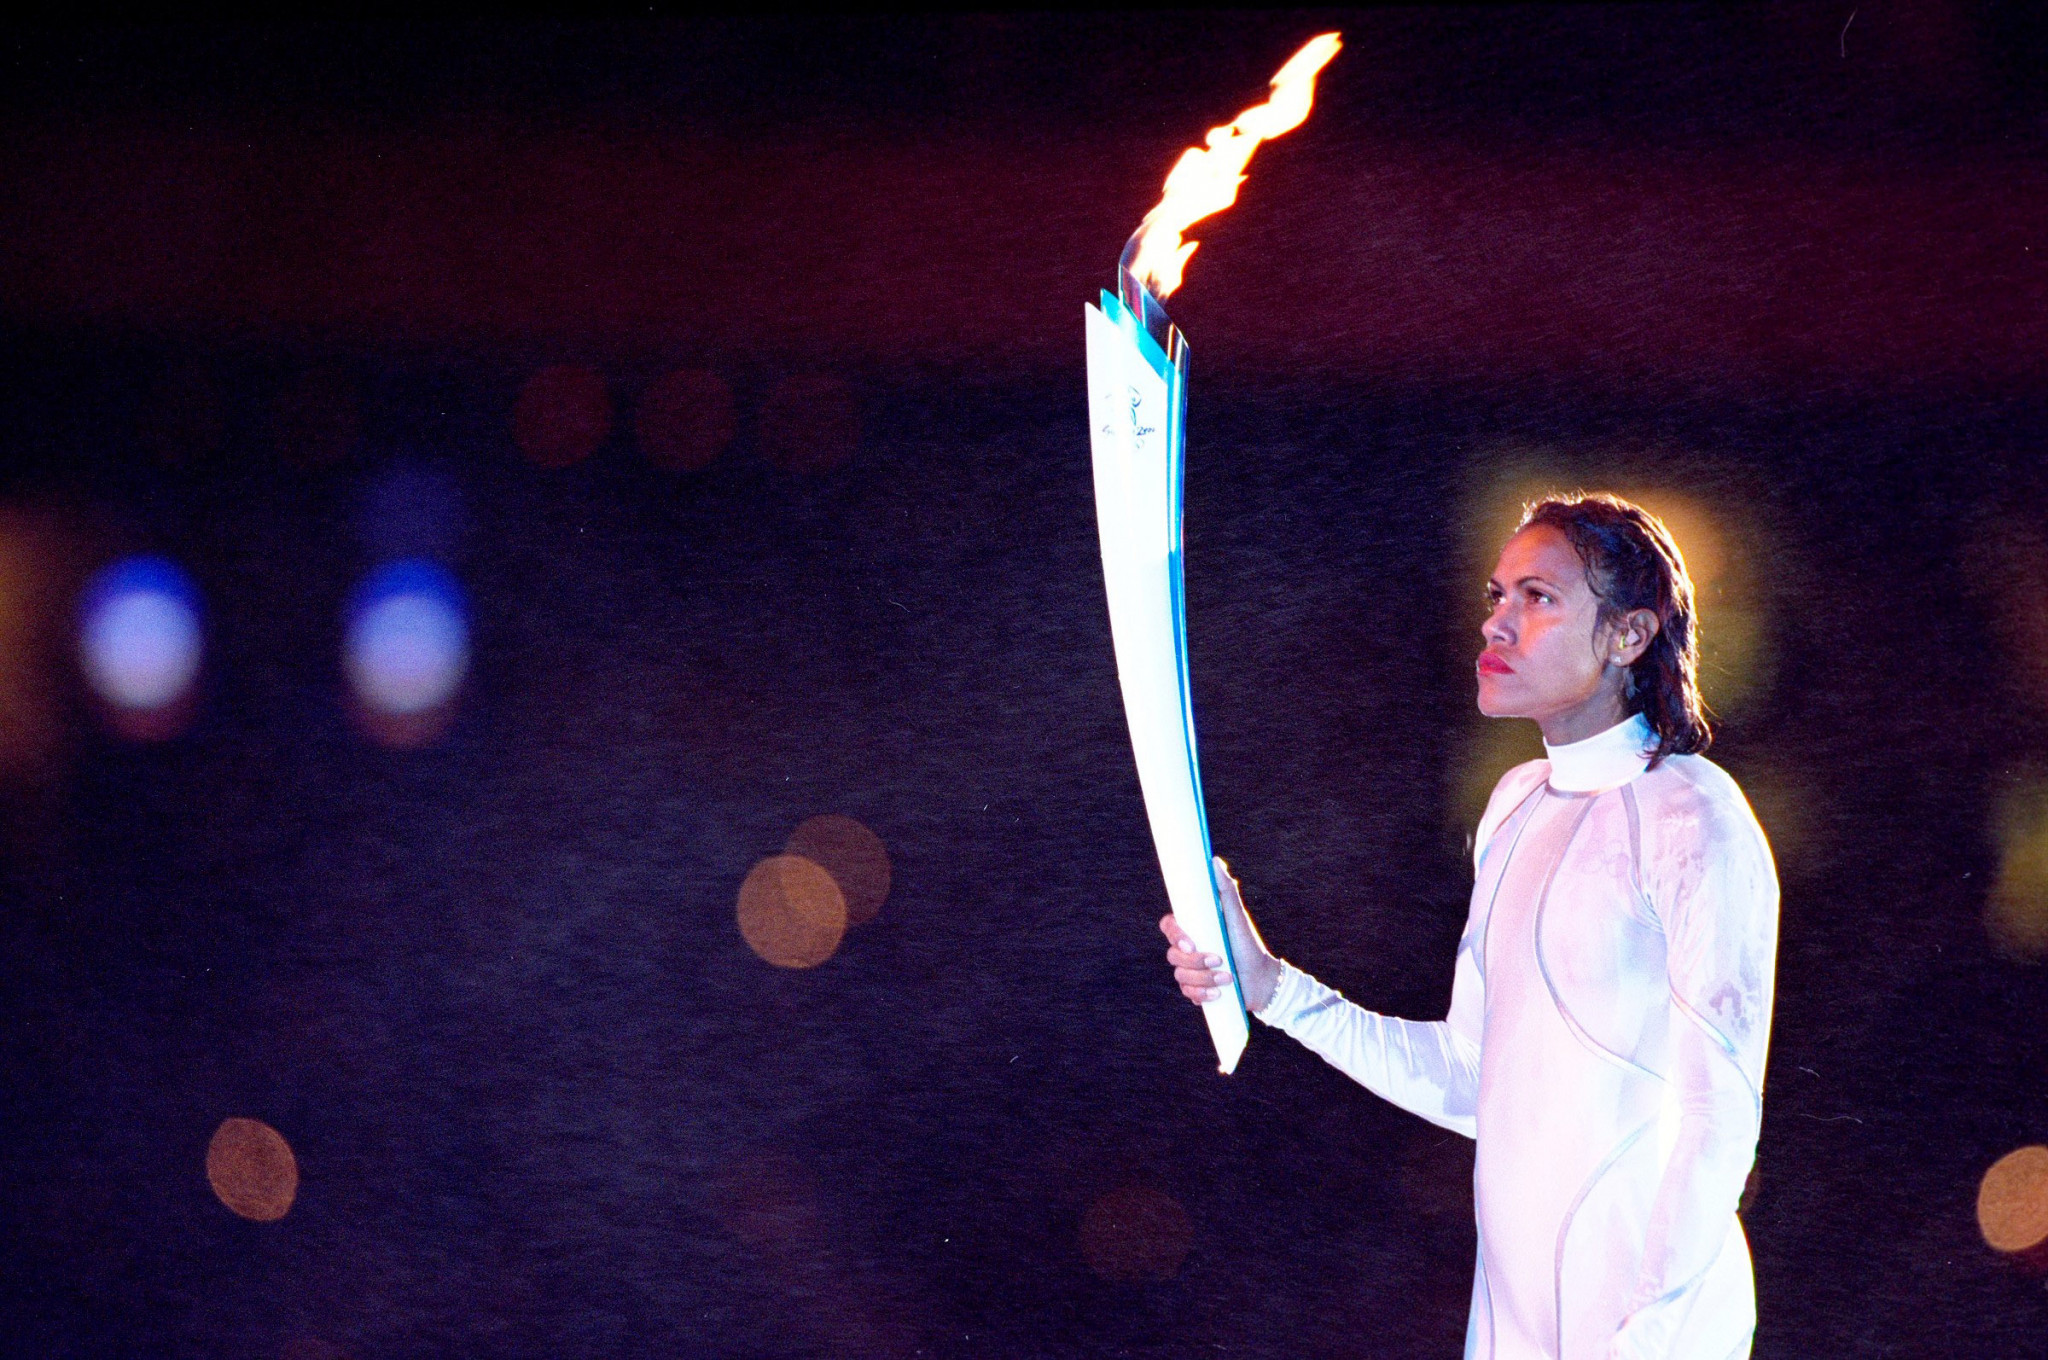 Australian 400 metres runner Cathy Freeman responded to a request from John Coates to light the flame at the Opening Ceremony of the 2000 Olympics in Sydney ©Getty Images